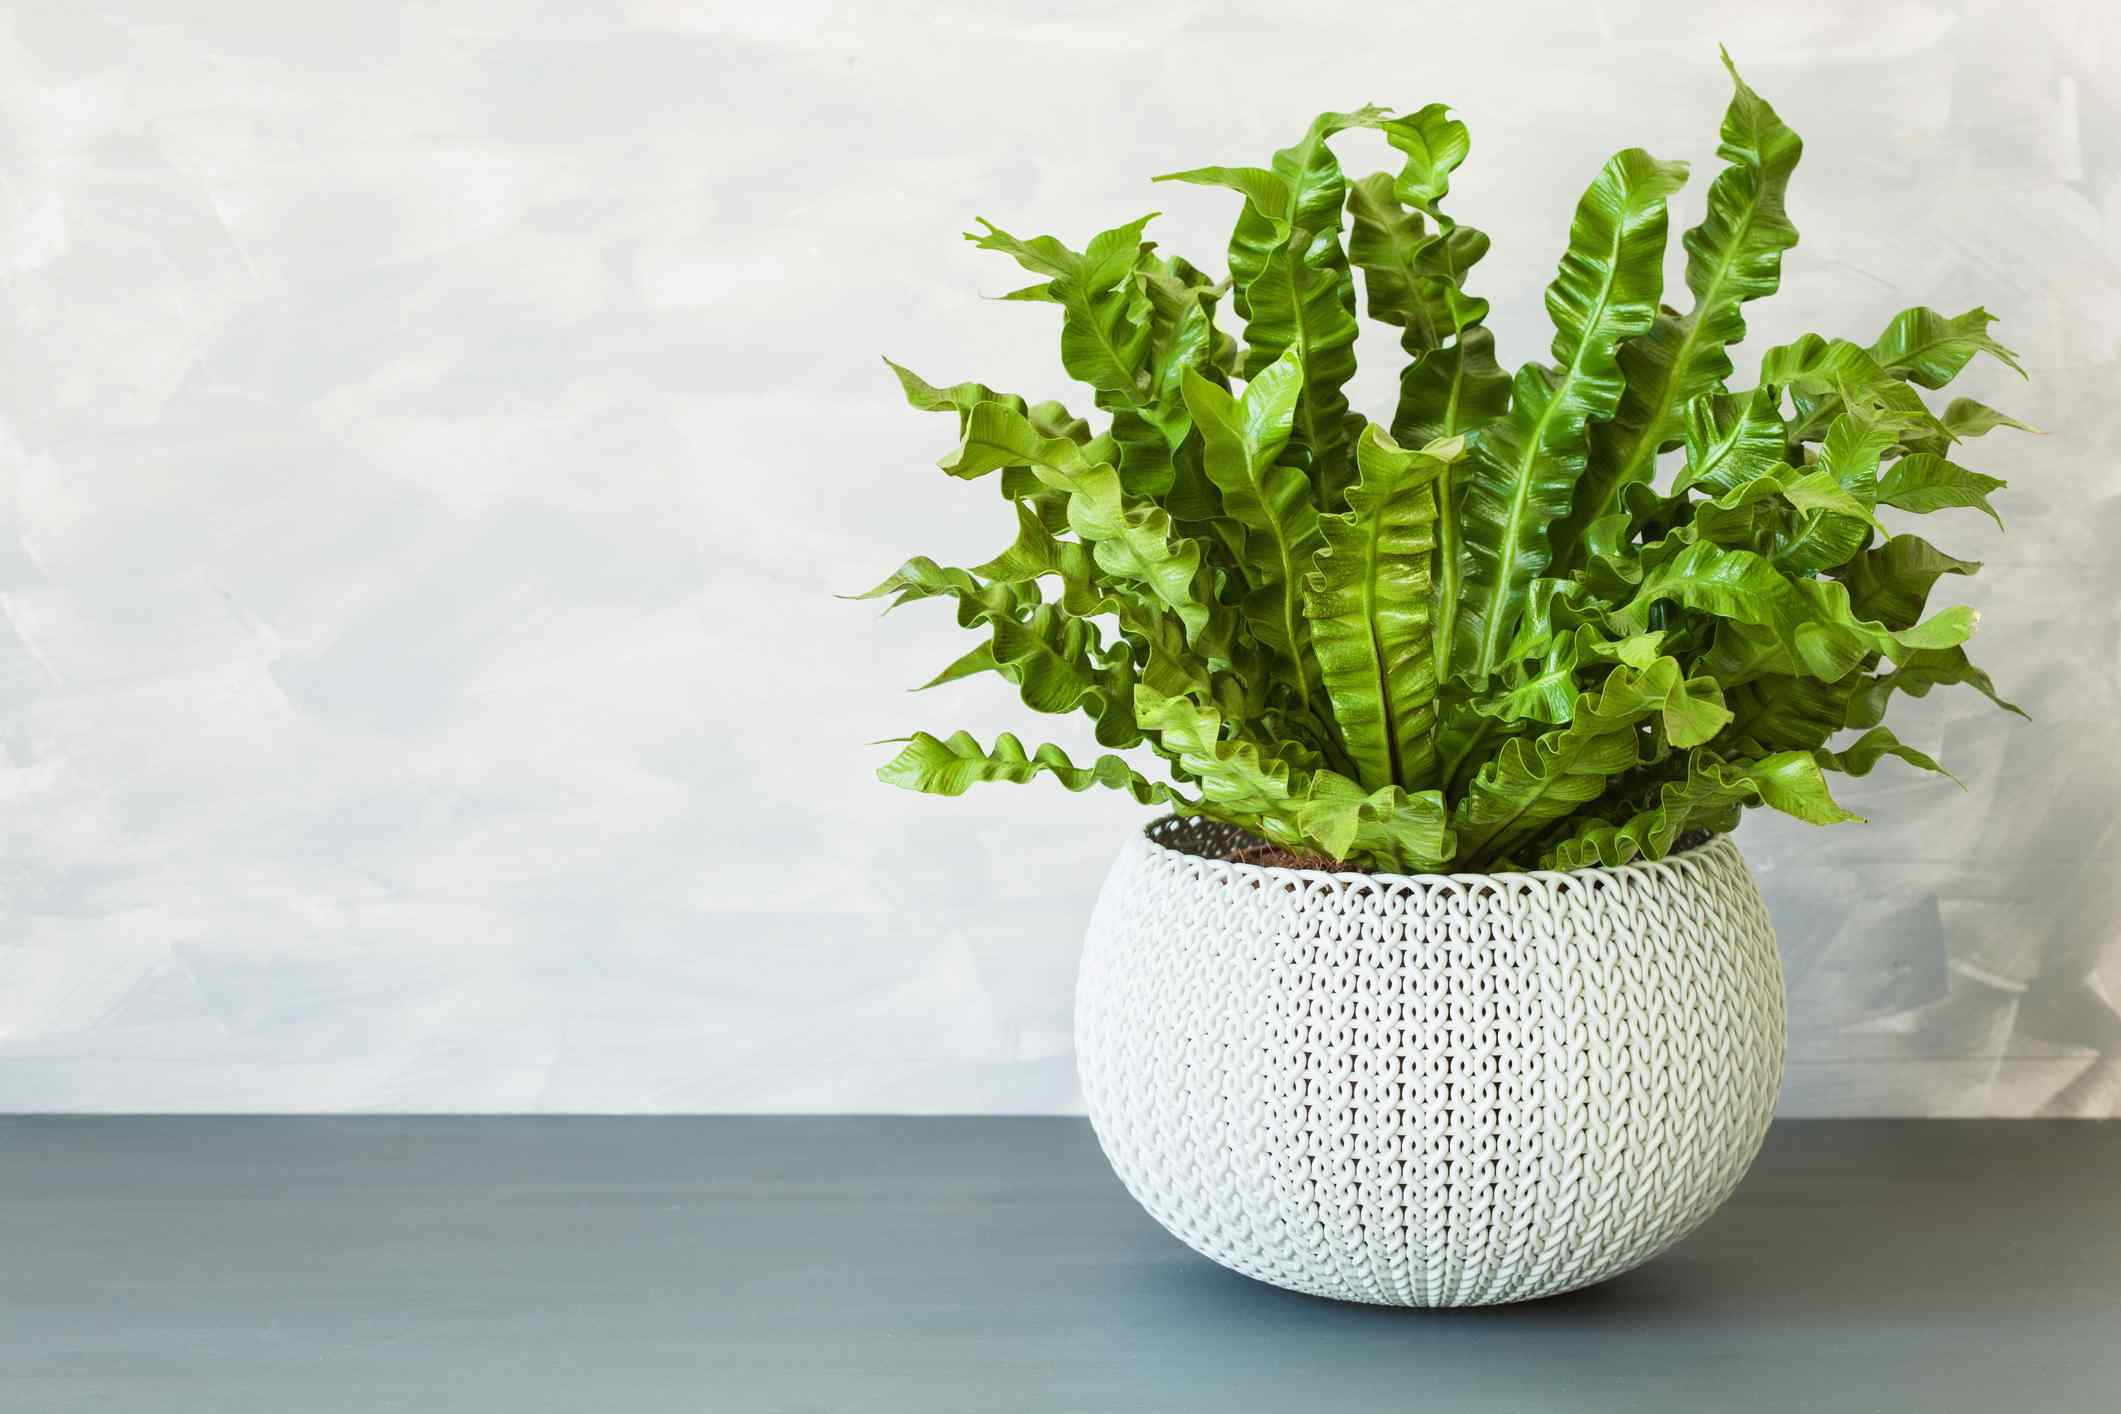 bird's nest fern with wavy green leaves in white planter on gray counter